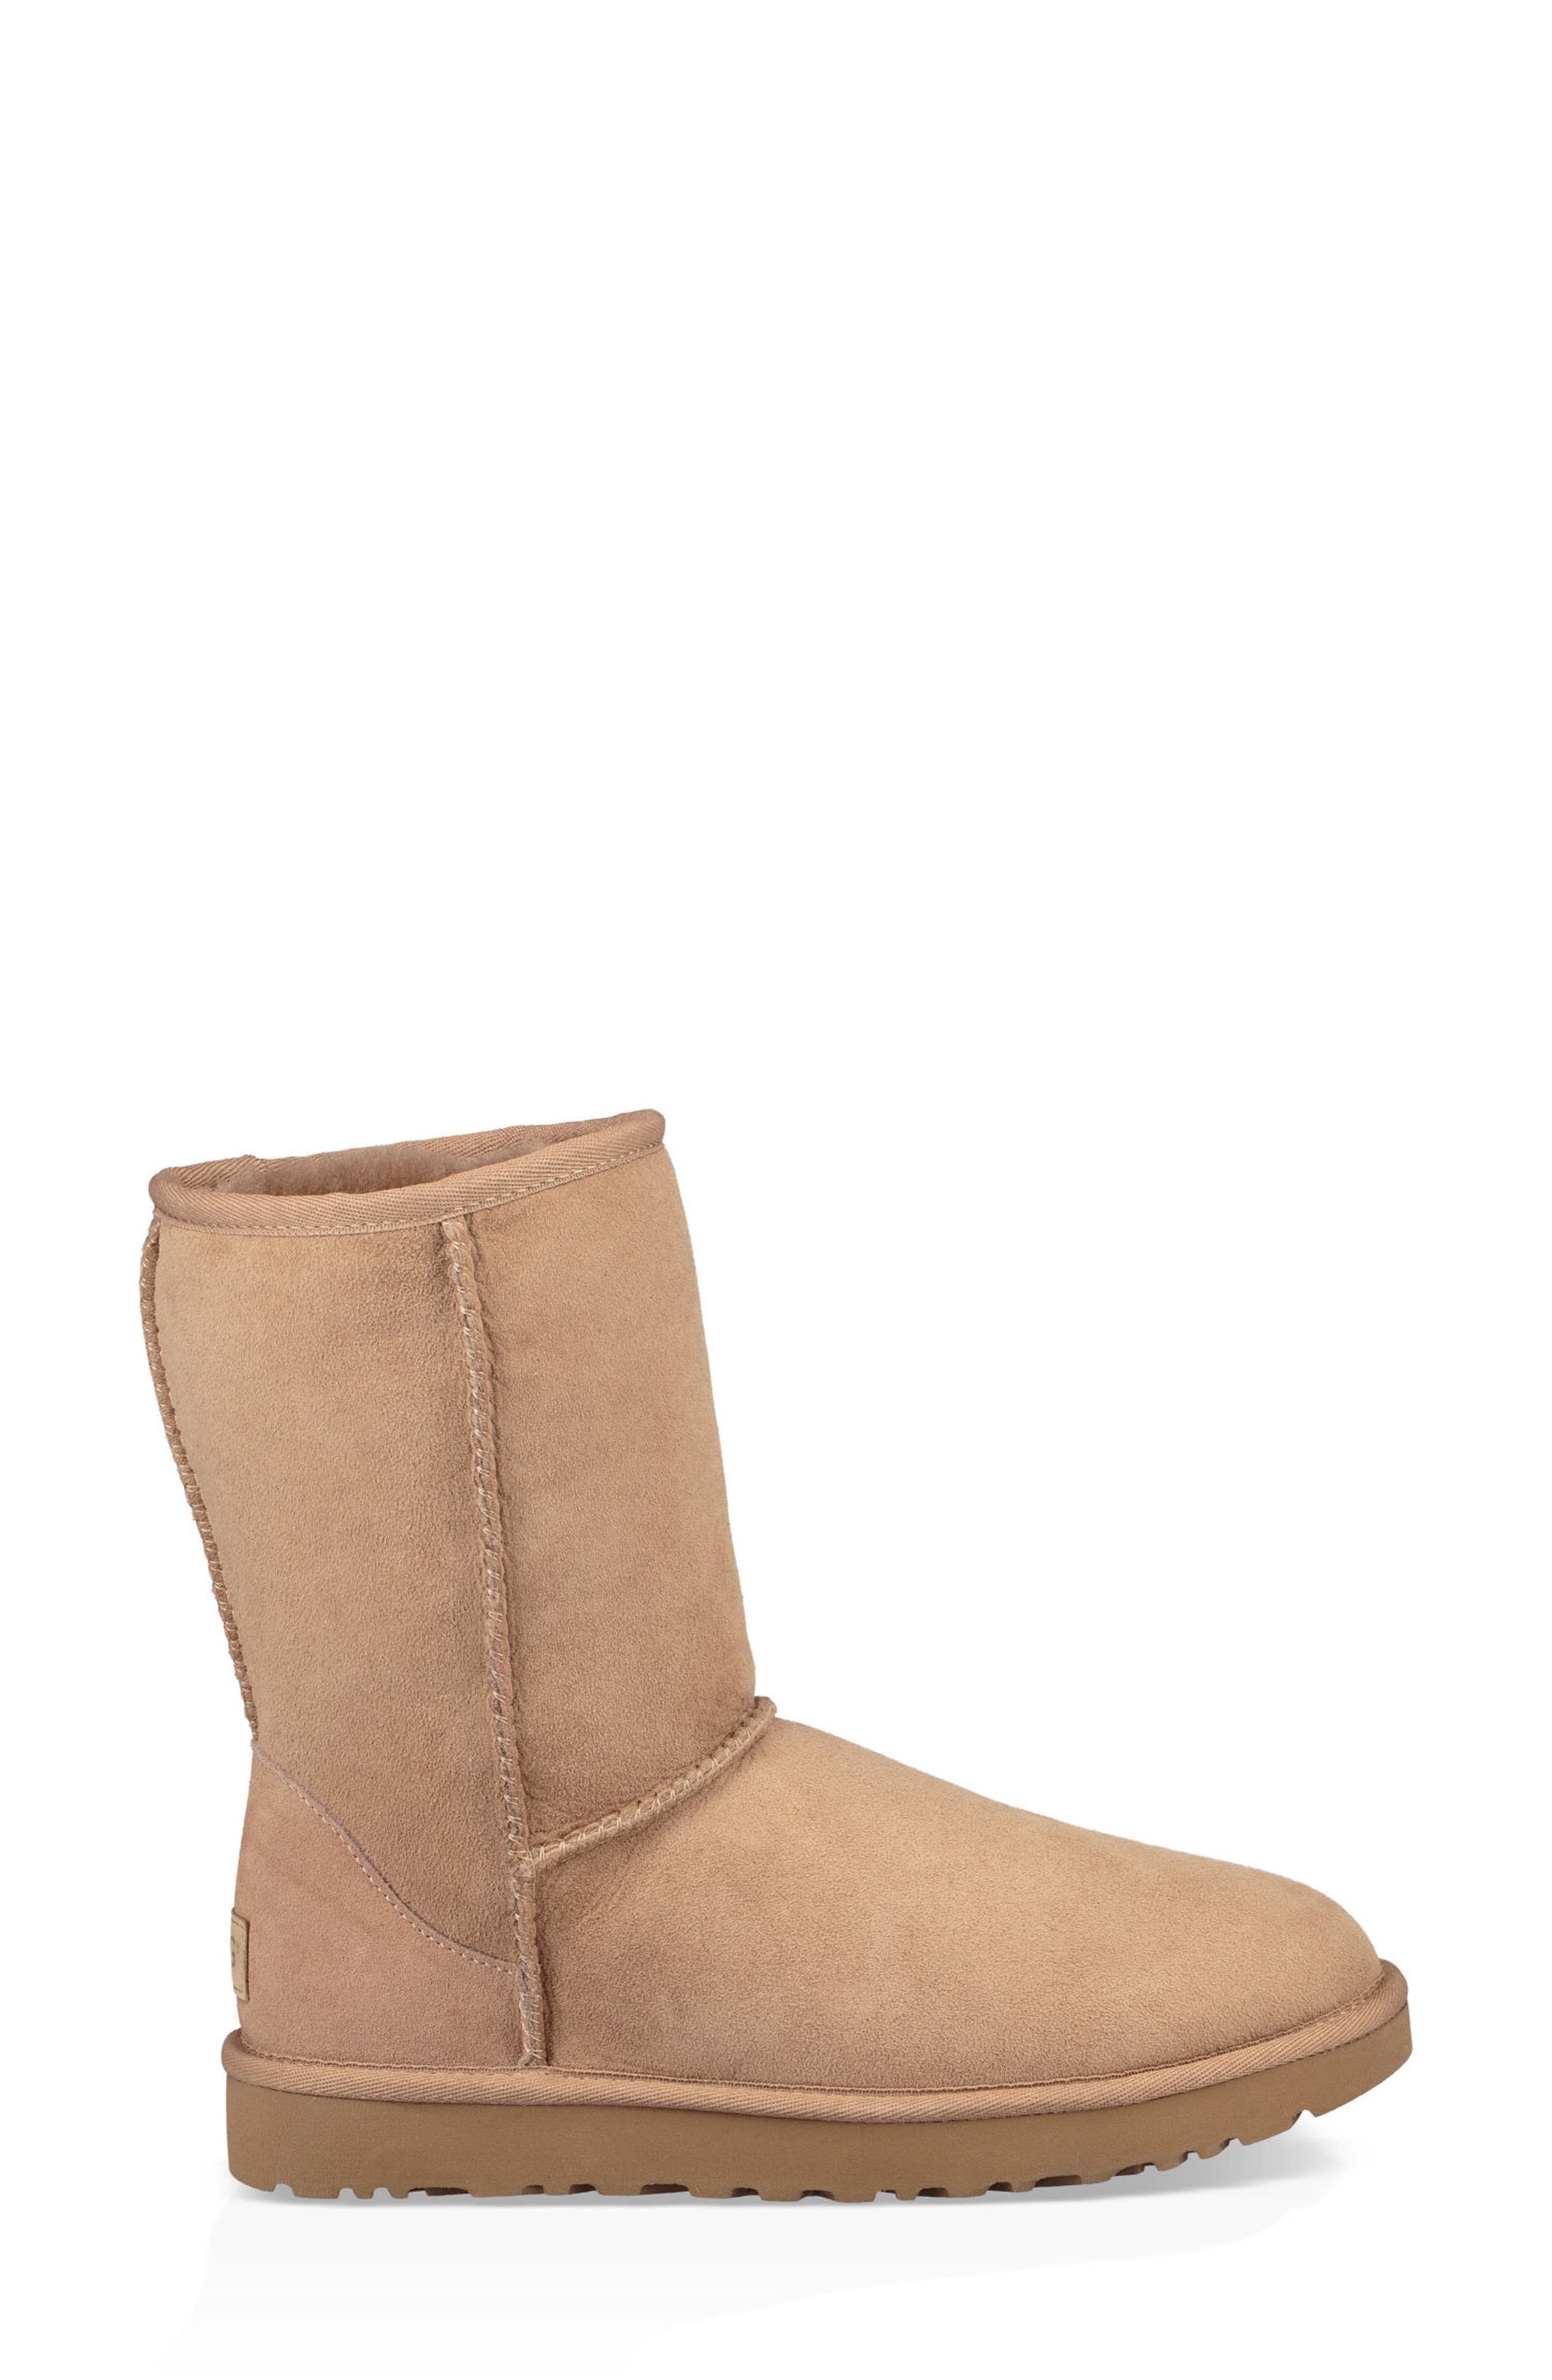 'Classic II' Genuine Shearling Lined Short Boot,                             Alternate thumbnail 5, color,                             Fawn Suede